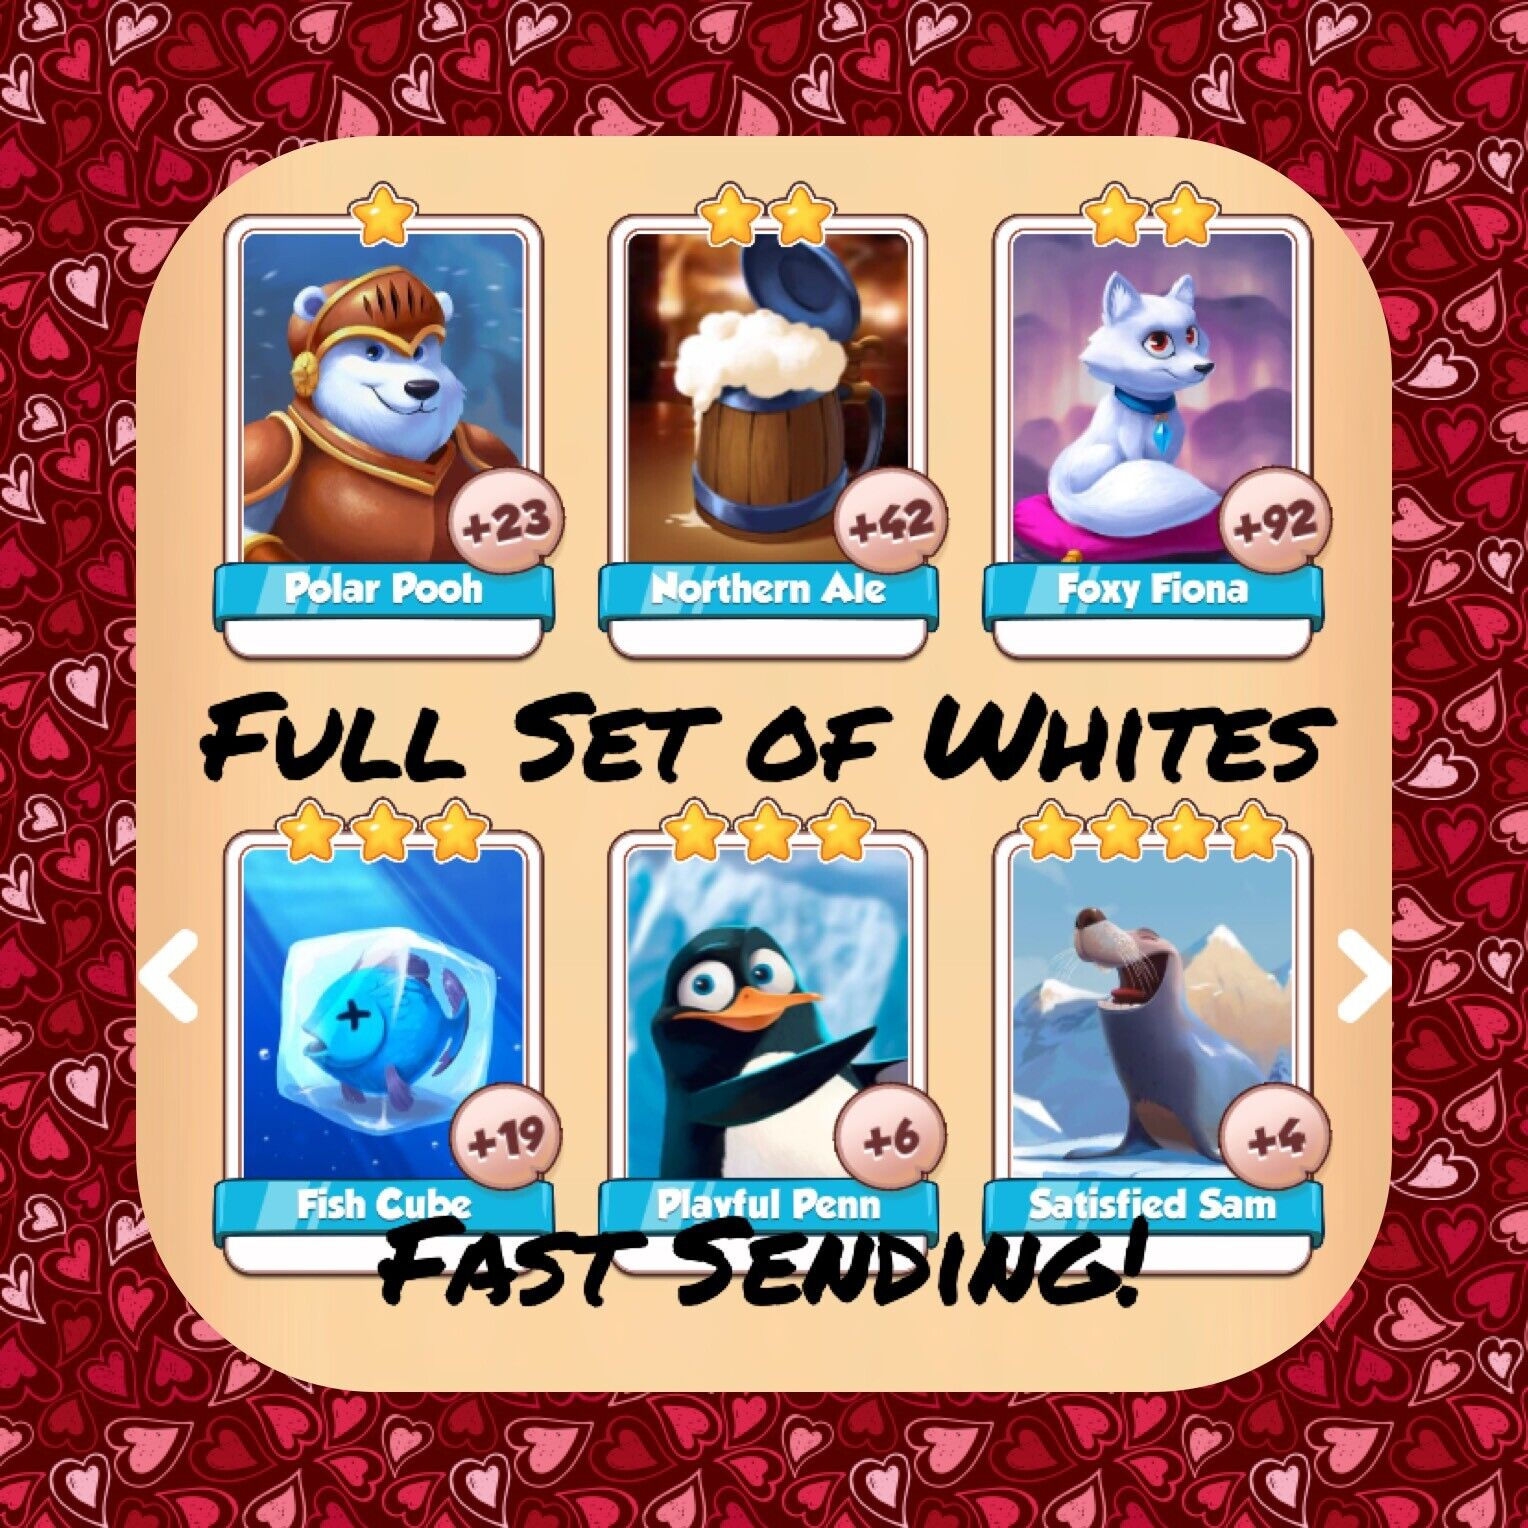 Coin Master Full Ice Queen Set (All 7 Whites) Excalibur Playful Penn (Fast Send)